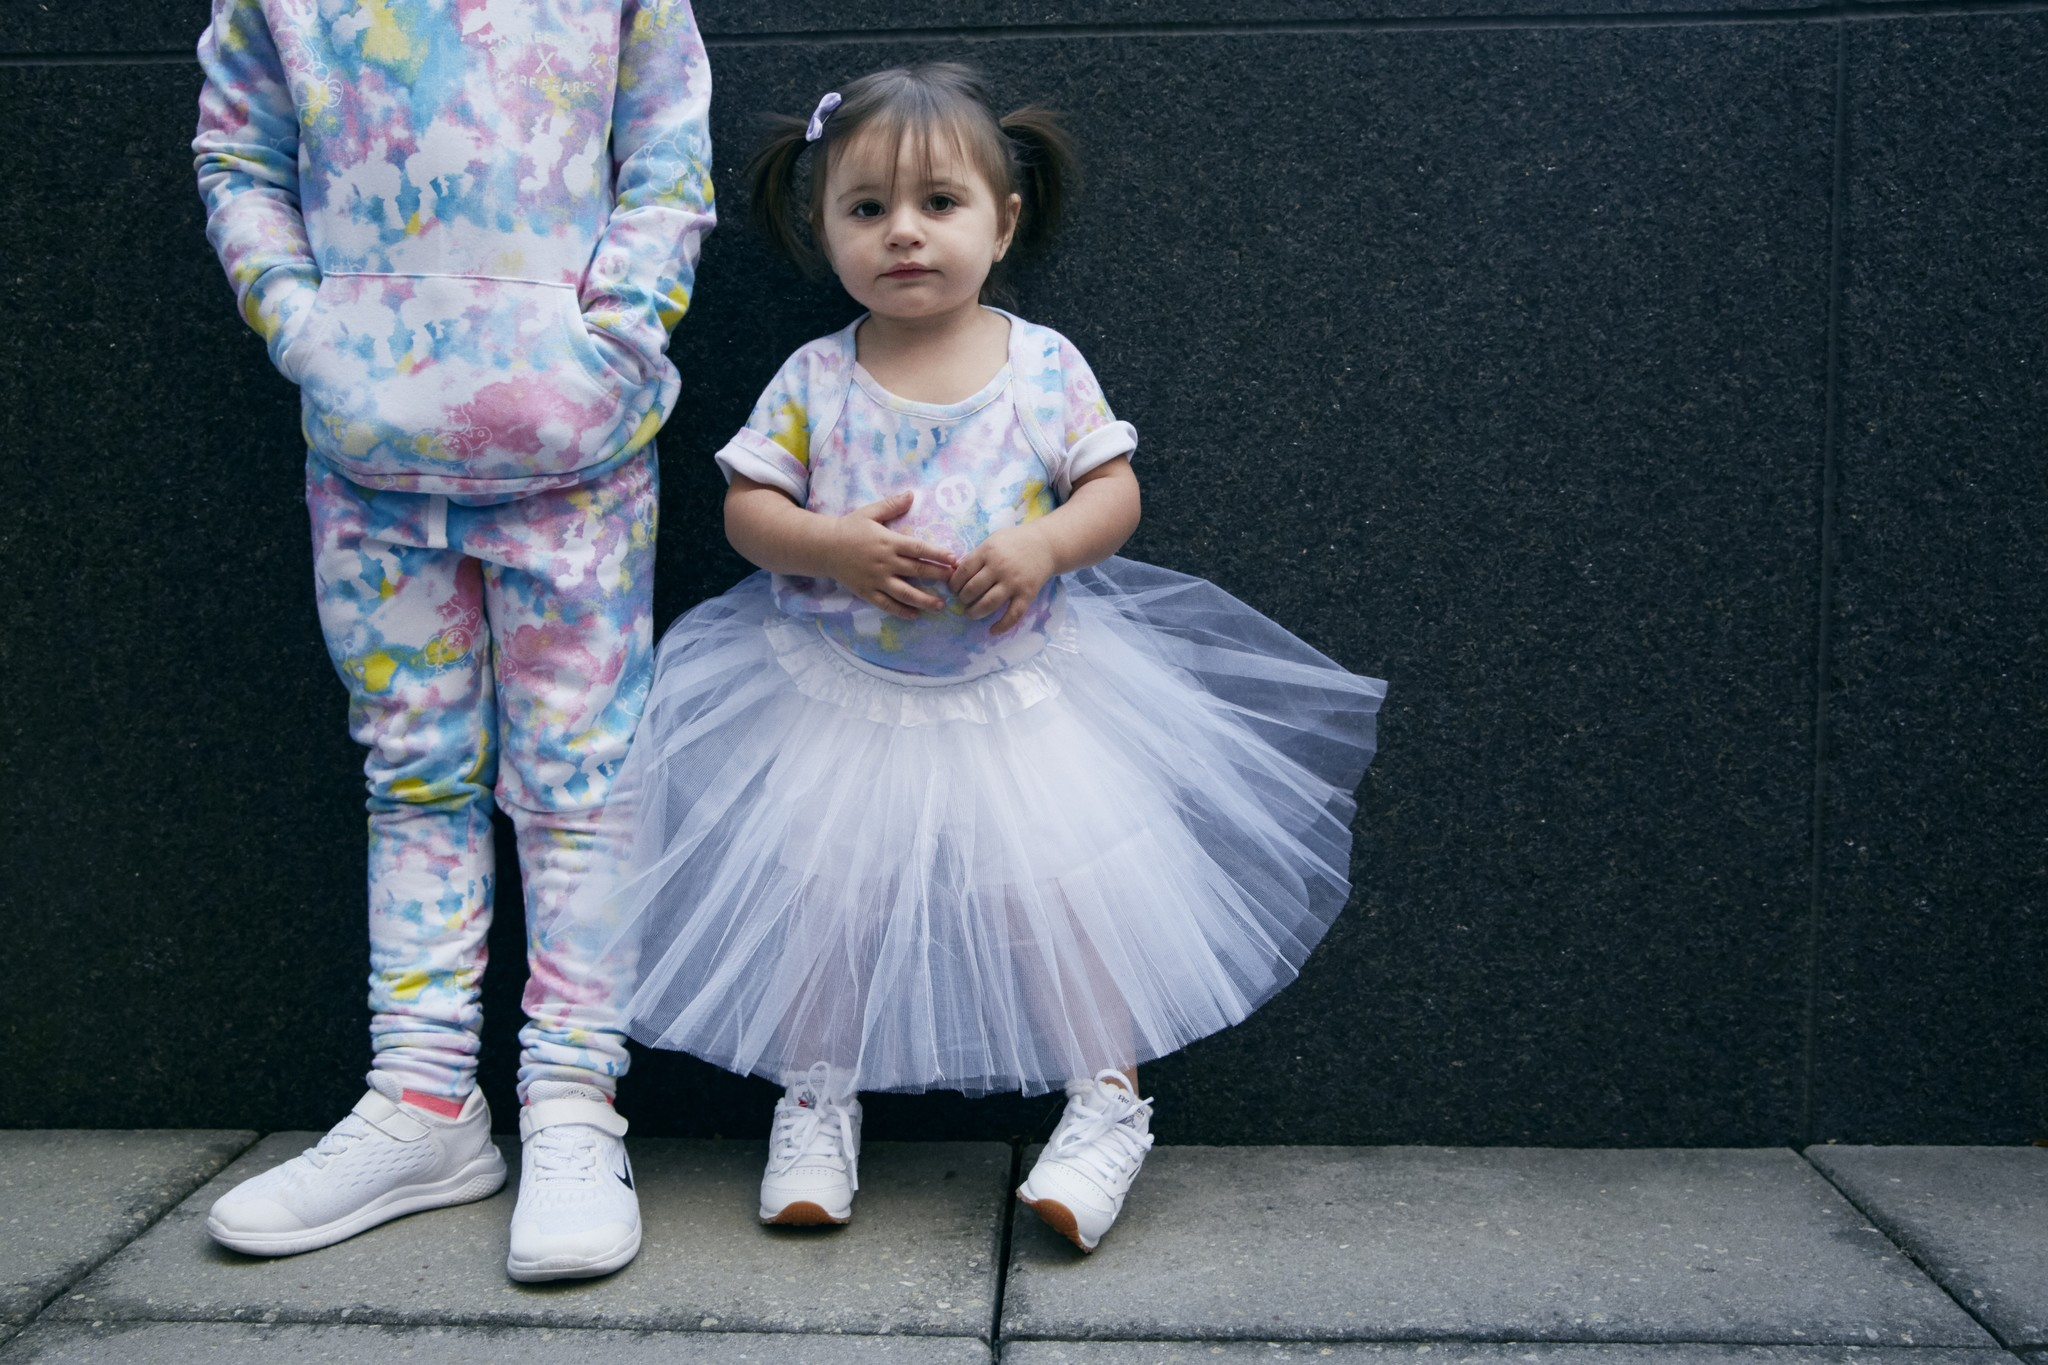 Some looks from the Boy Meets Girl x Care Bears Kids collaboration.